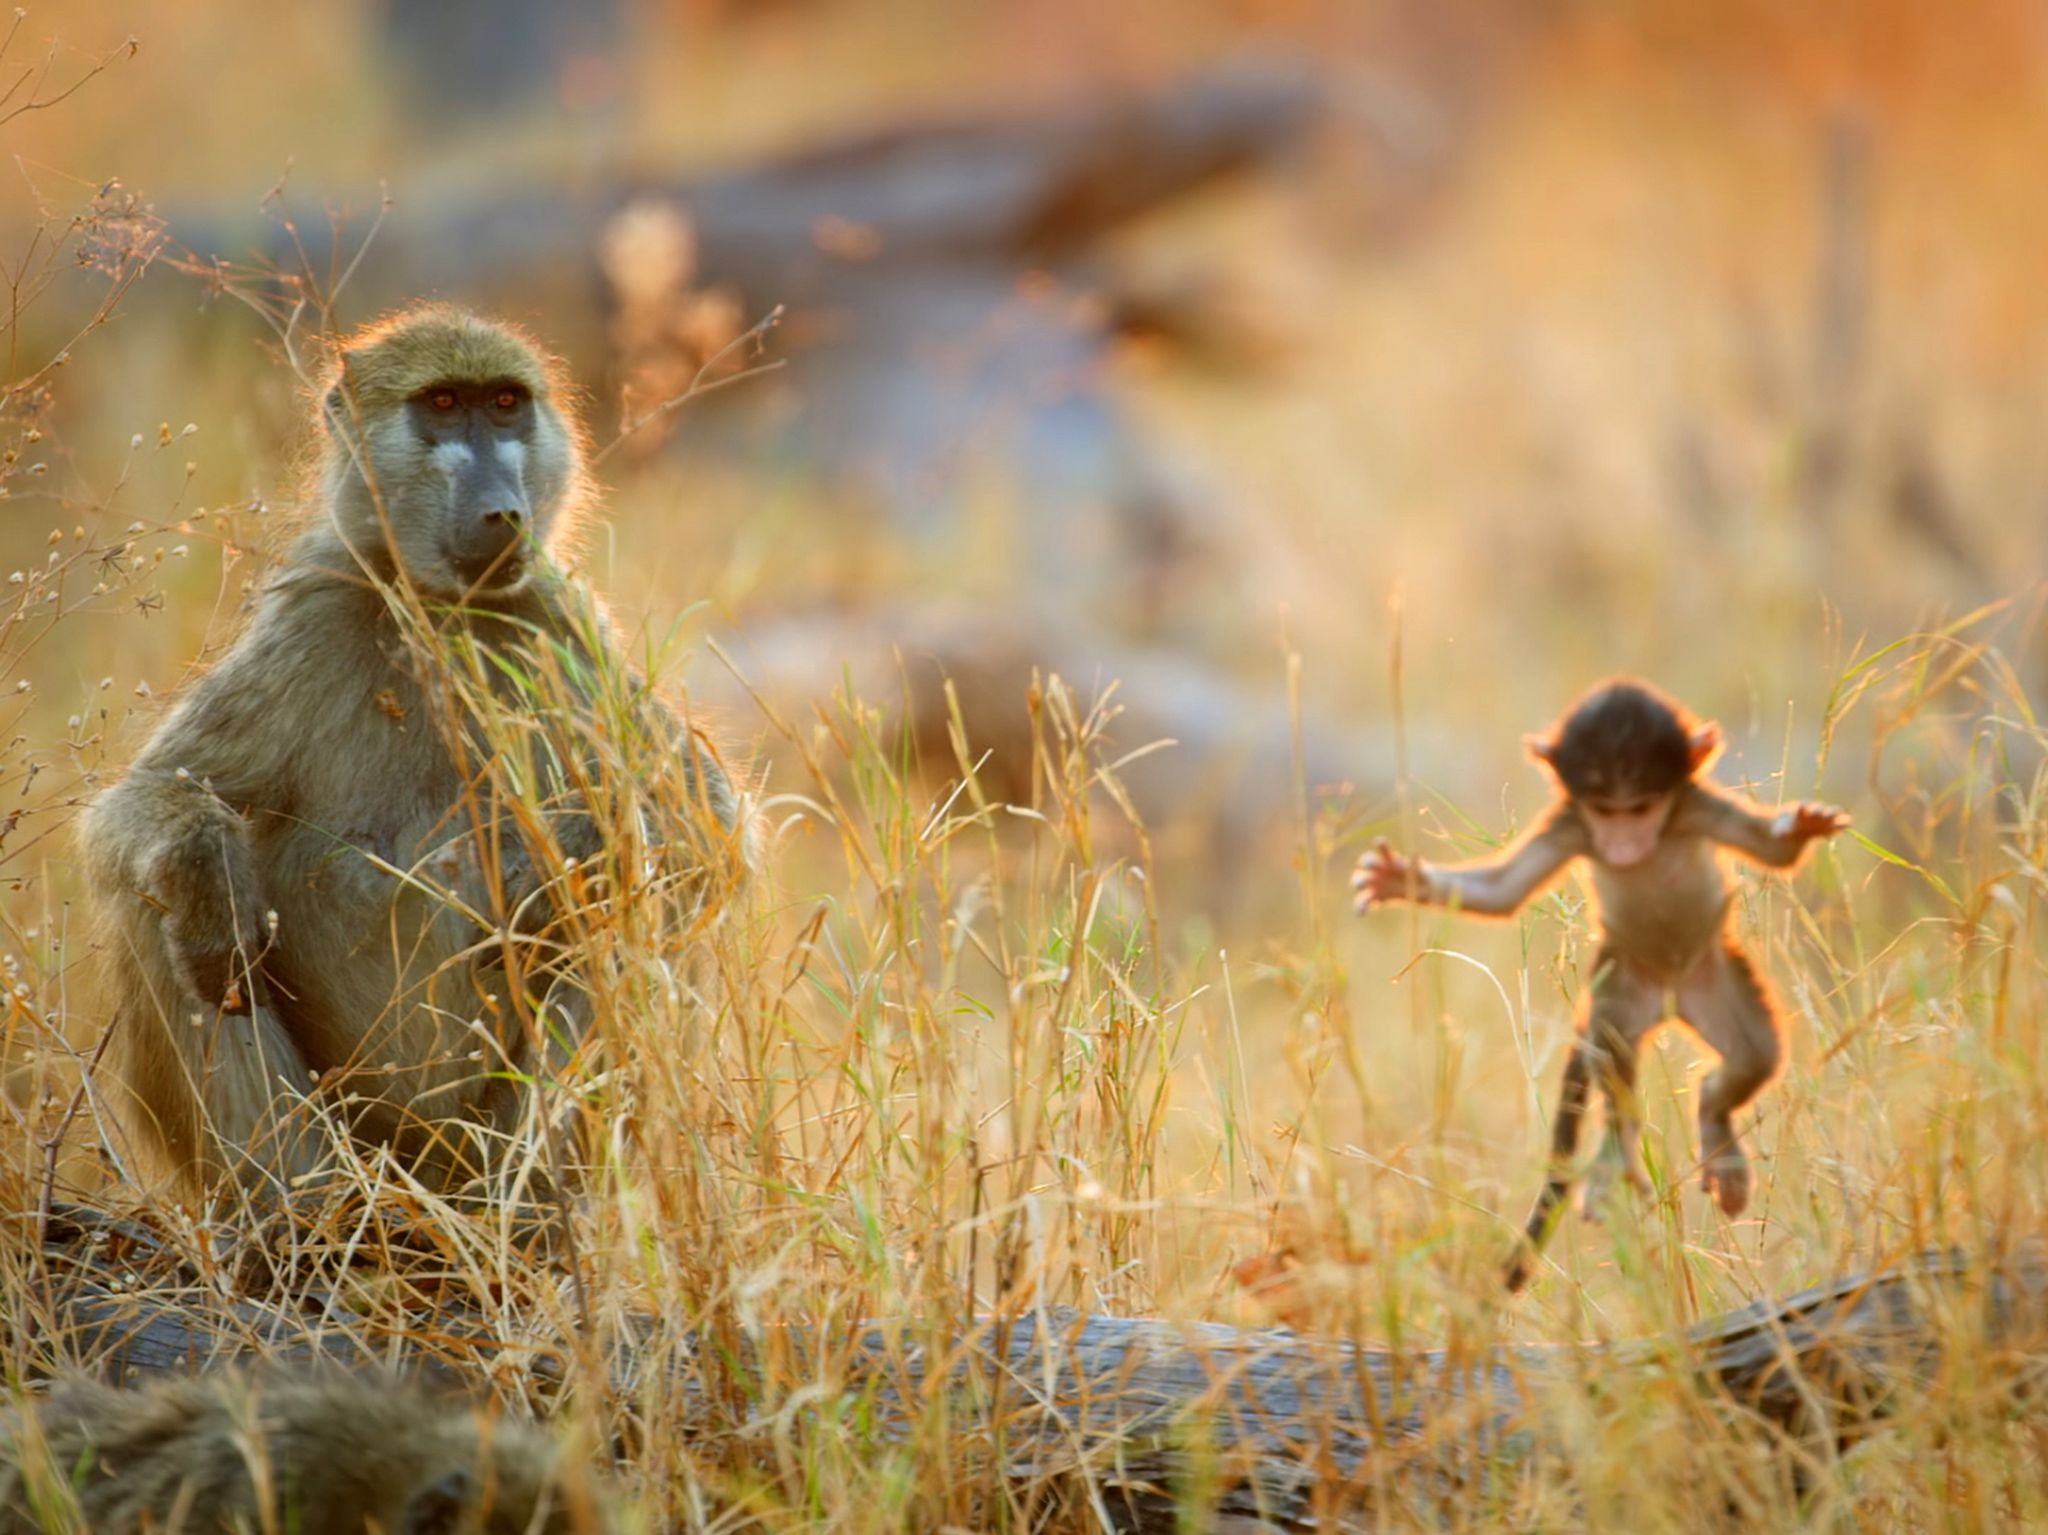 Botswana:  Baboon sitting on log with baby baboon jumping off.  This image is from Africa's Wild... [Foto del giorno - dicembre 2018]